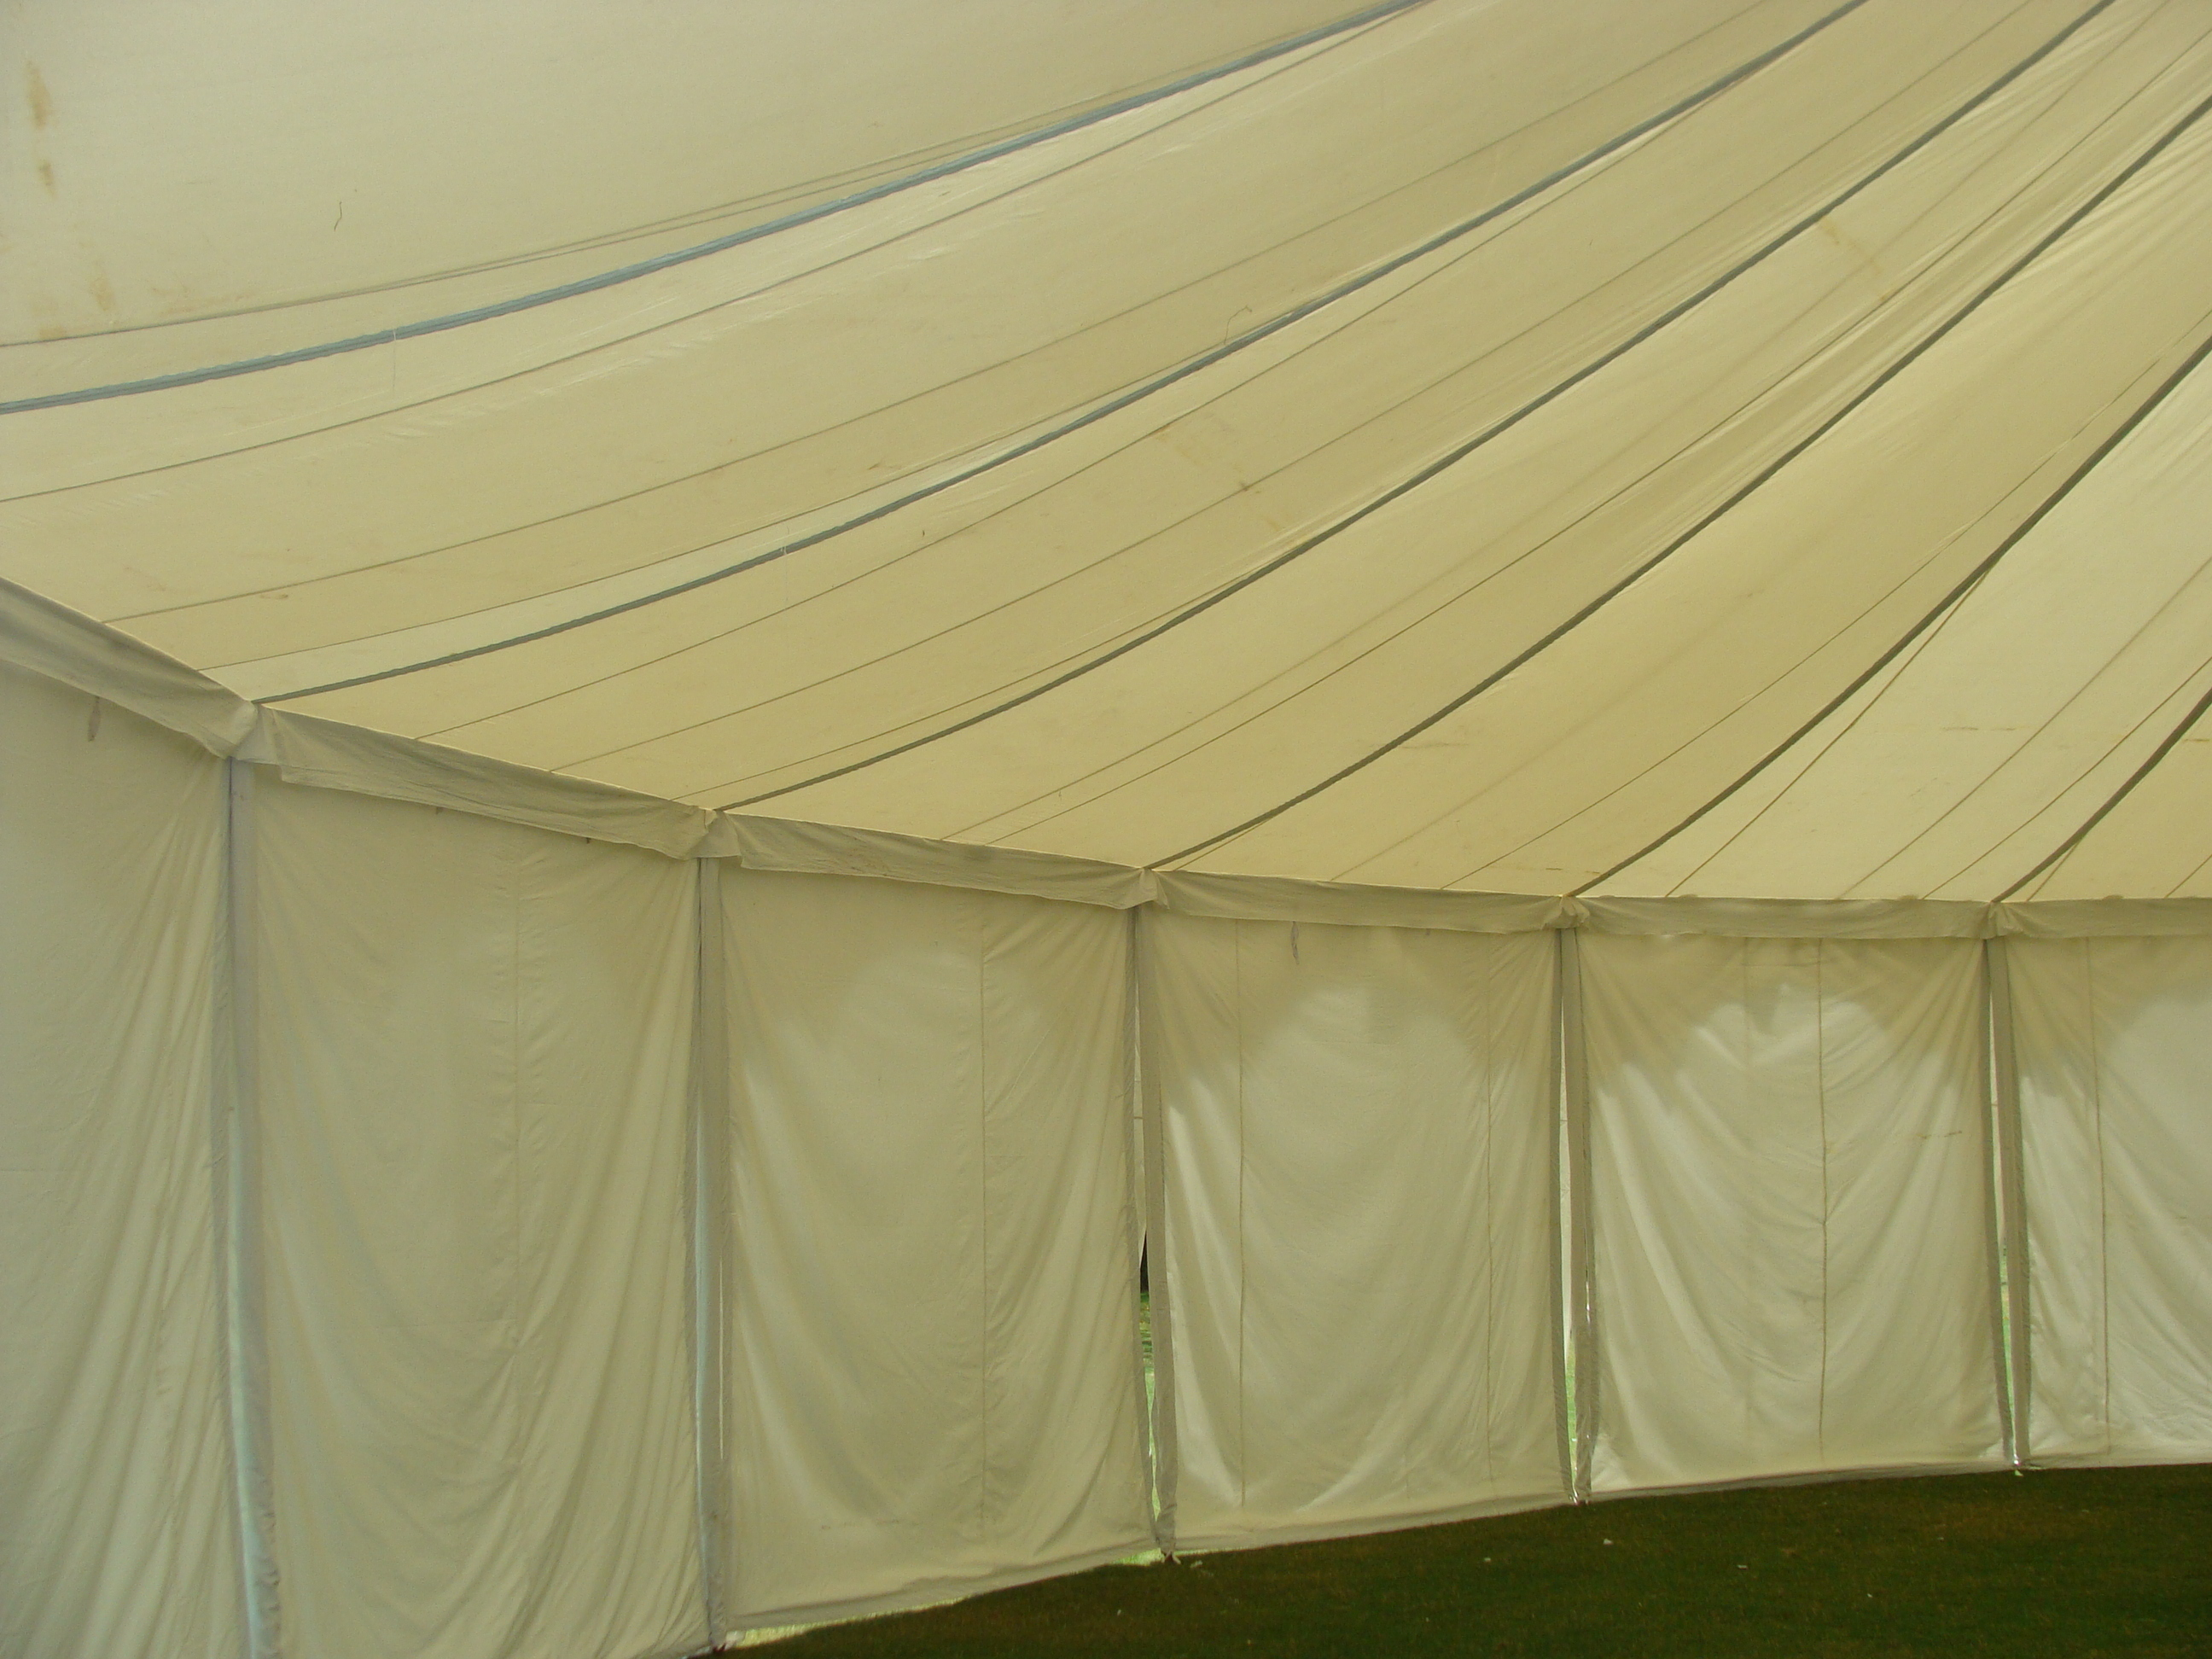 Round Party Tent Round Party Tent Manufacturer Supplier